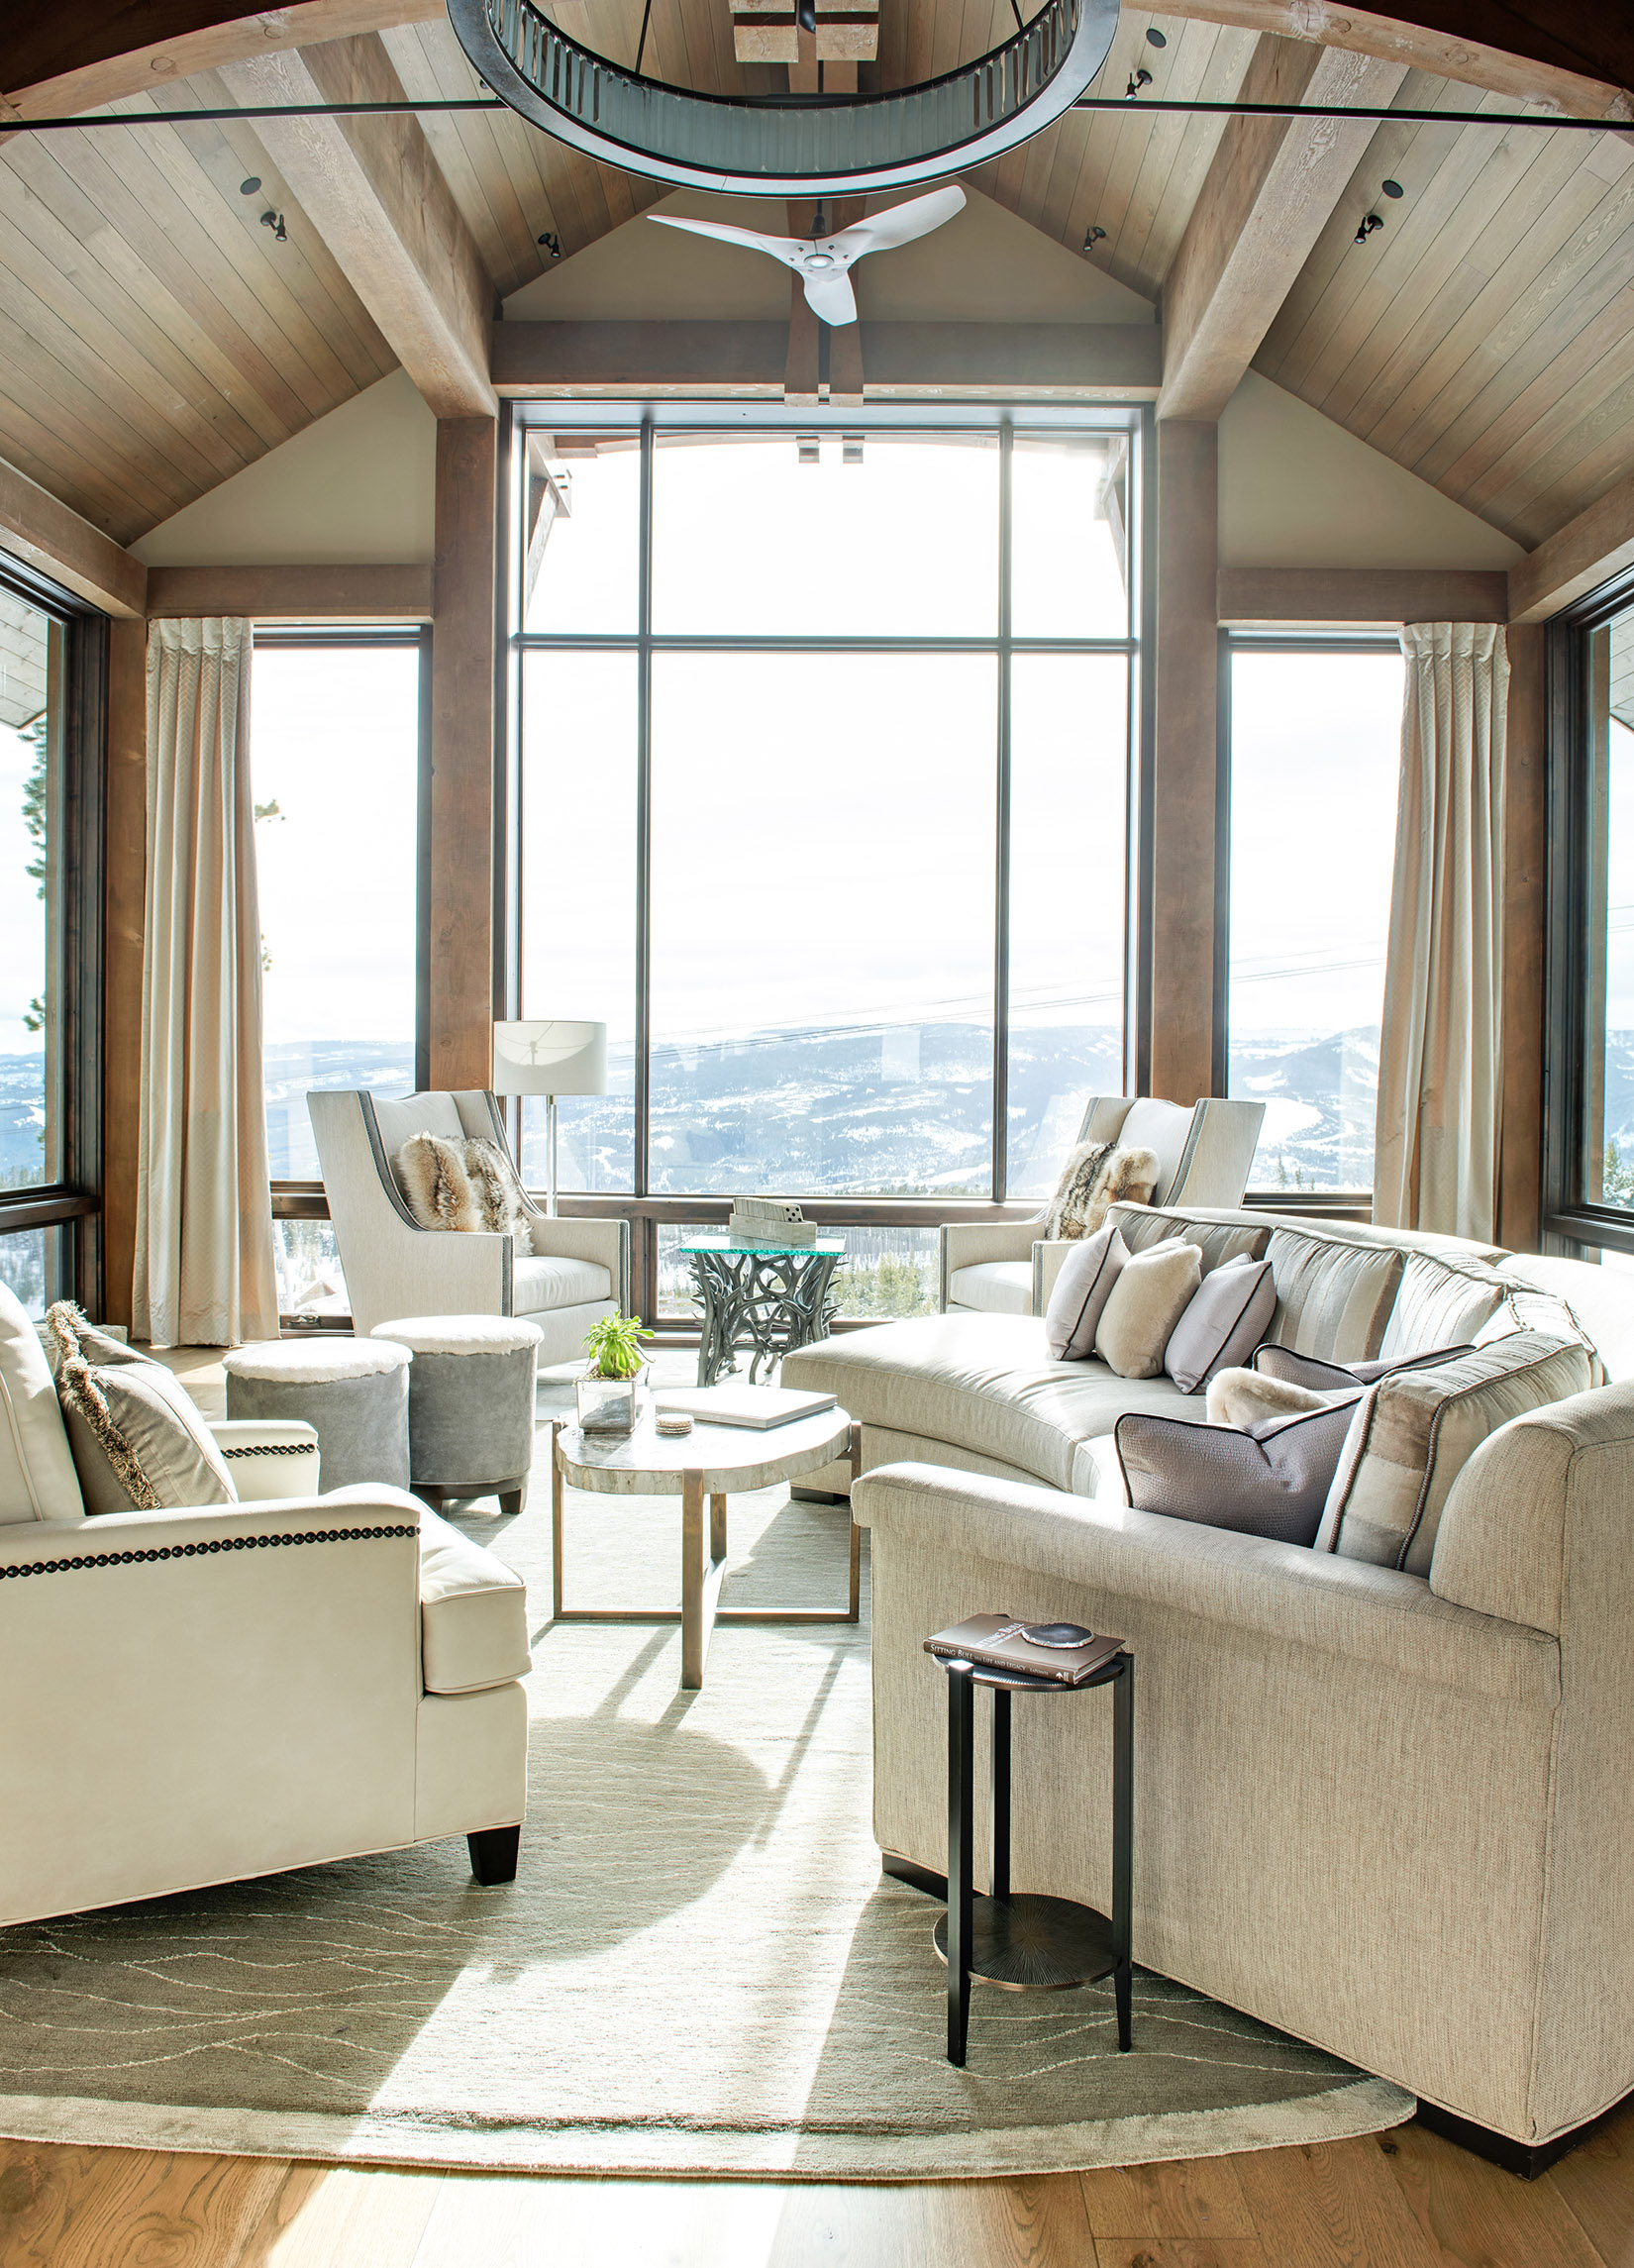 Bright, open, & airy is how I describe this beautiful great room designed by Michelle Varda from  Varda Interiors . I am obsessed with the furnishings, they brighten up the room perfectly! Builder -  Big Sky Build